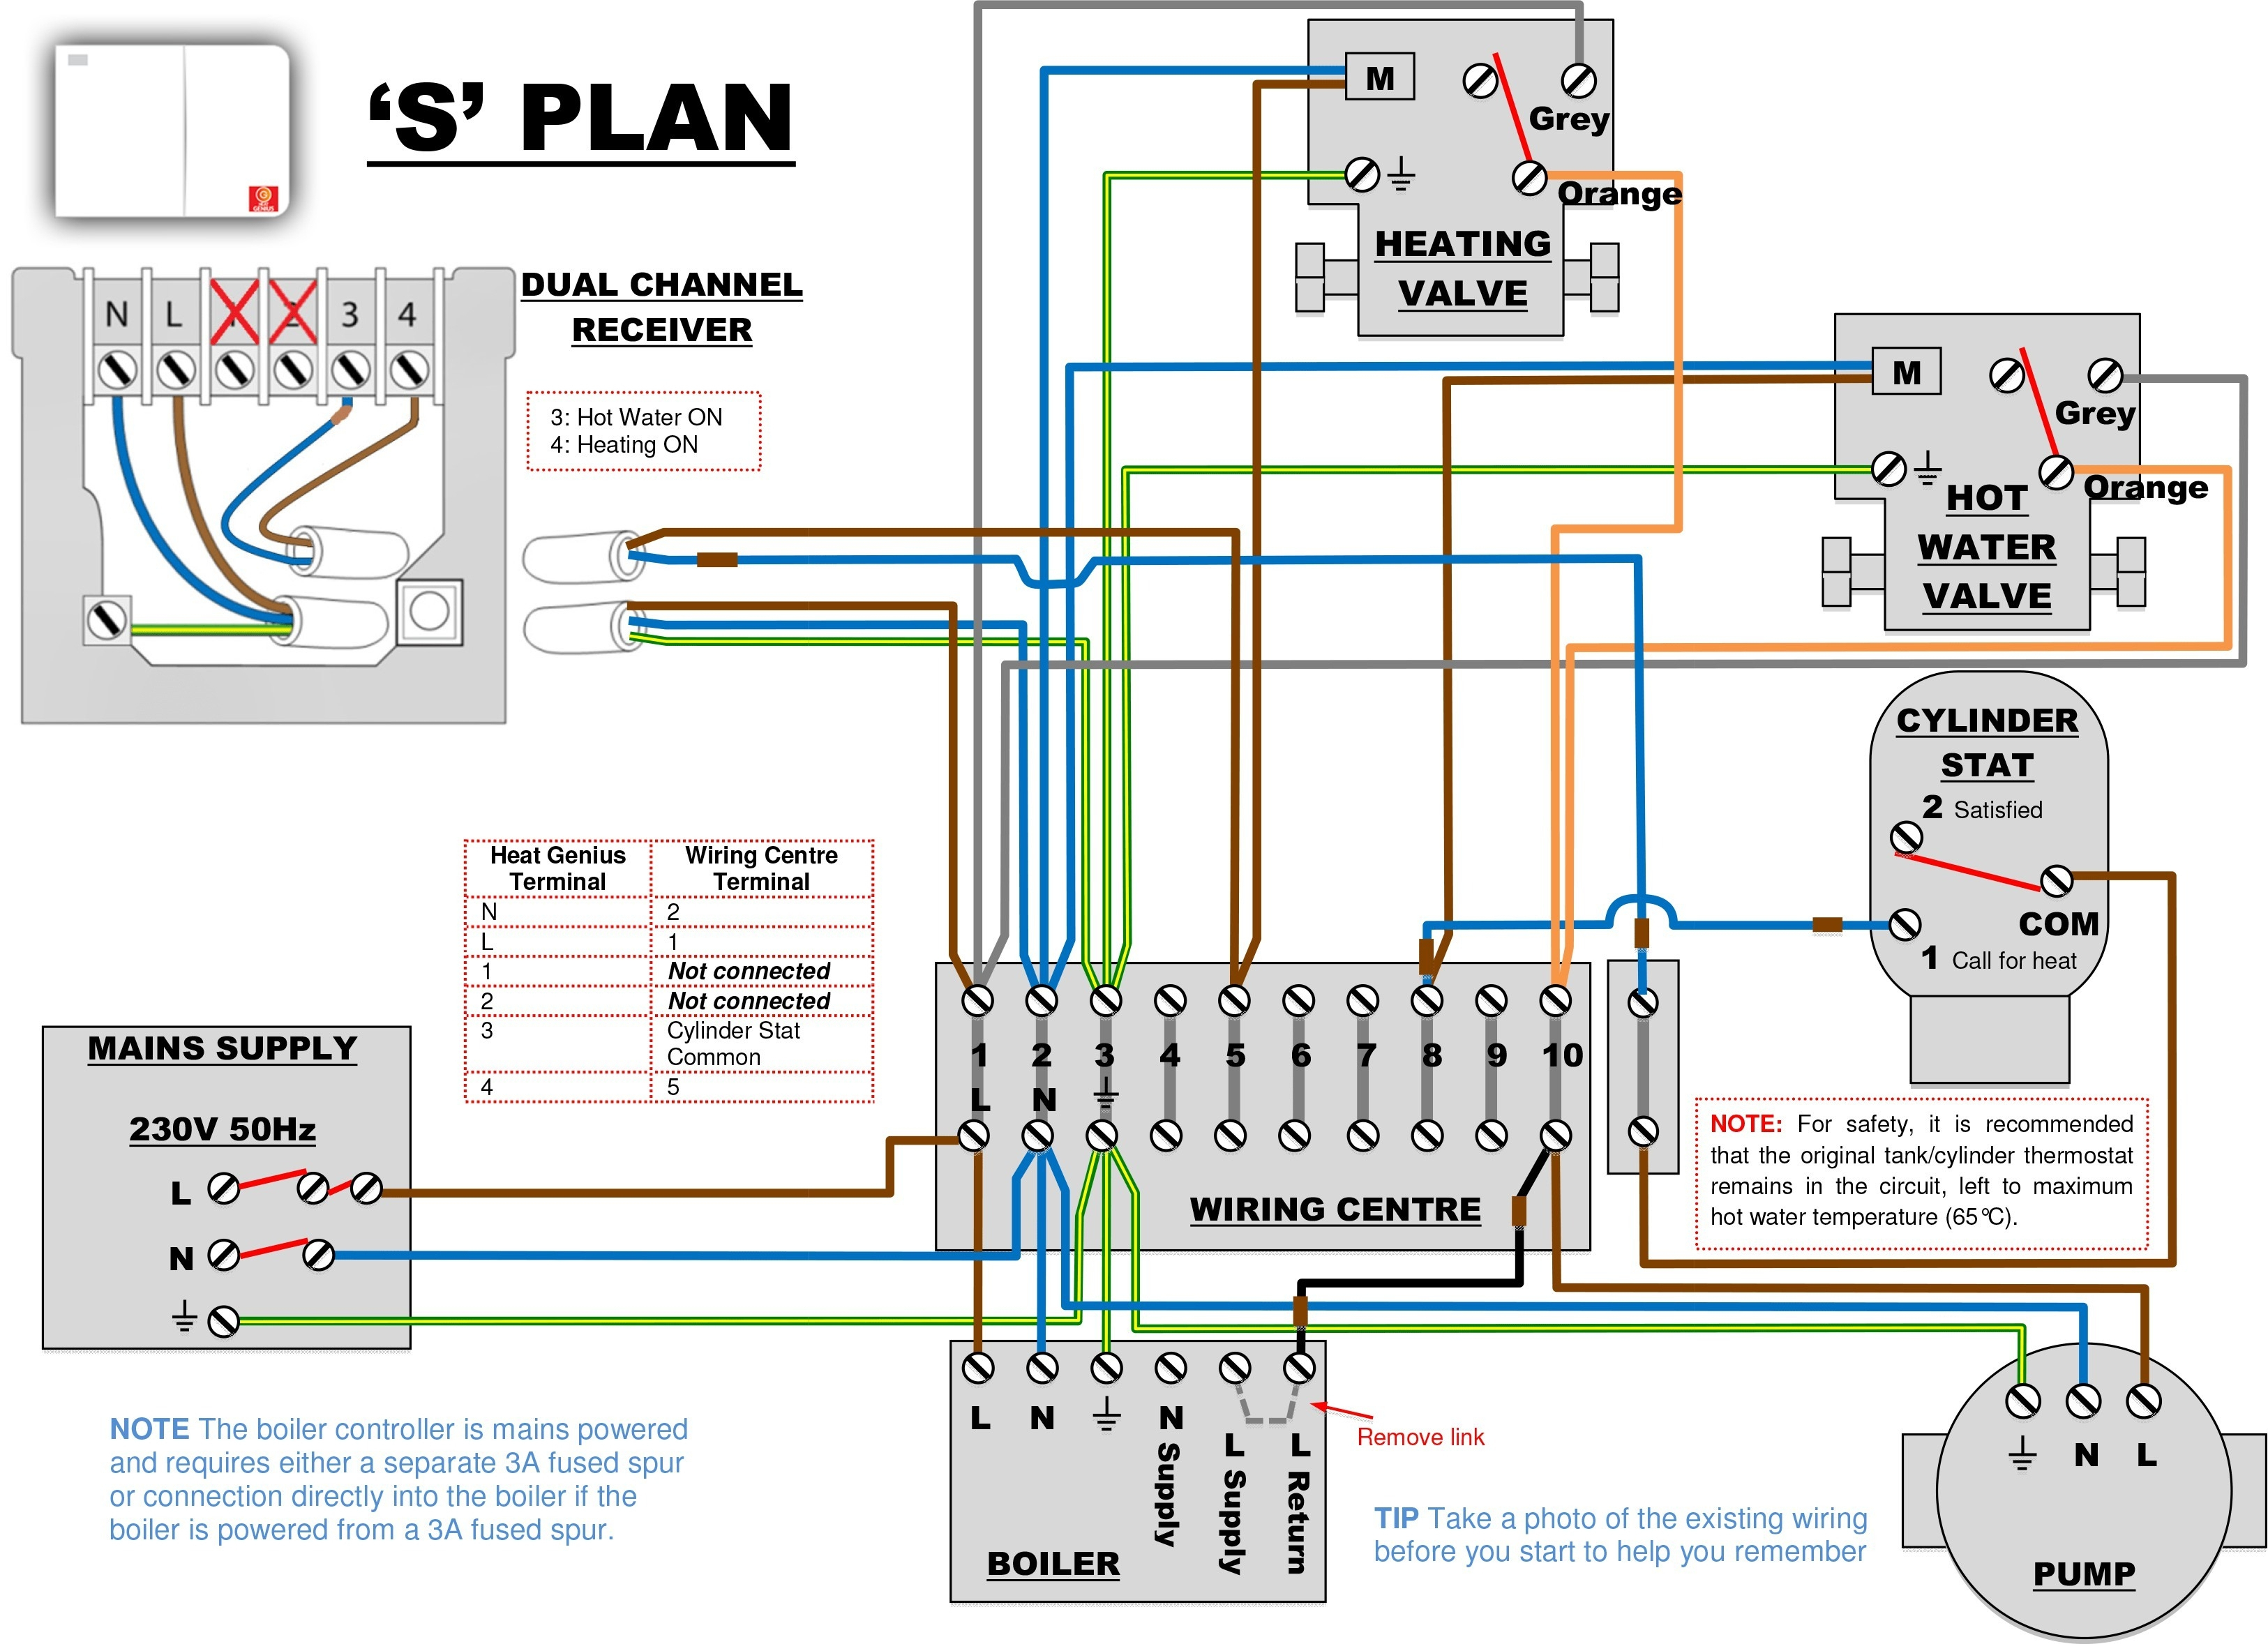 Nest Thermostat Wiring Diagram For Carrier Infinity - Wiring - Nest Controller Wiring Diagram